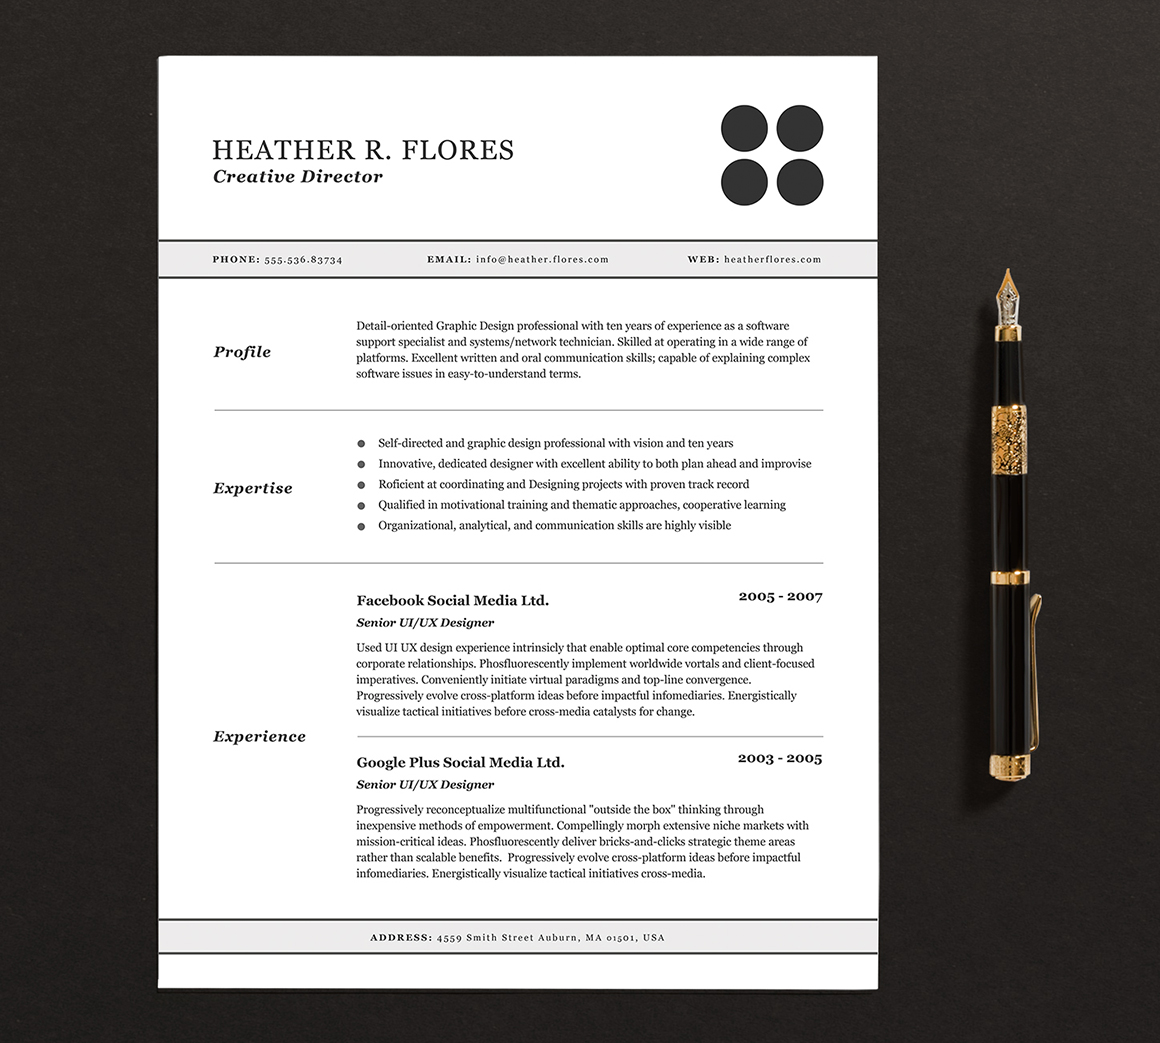 My Resume Is 2 Pages 3 Pages Resume Cv Template Full Set Resume Templates On